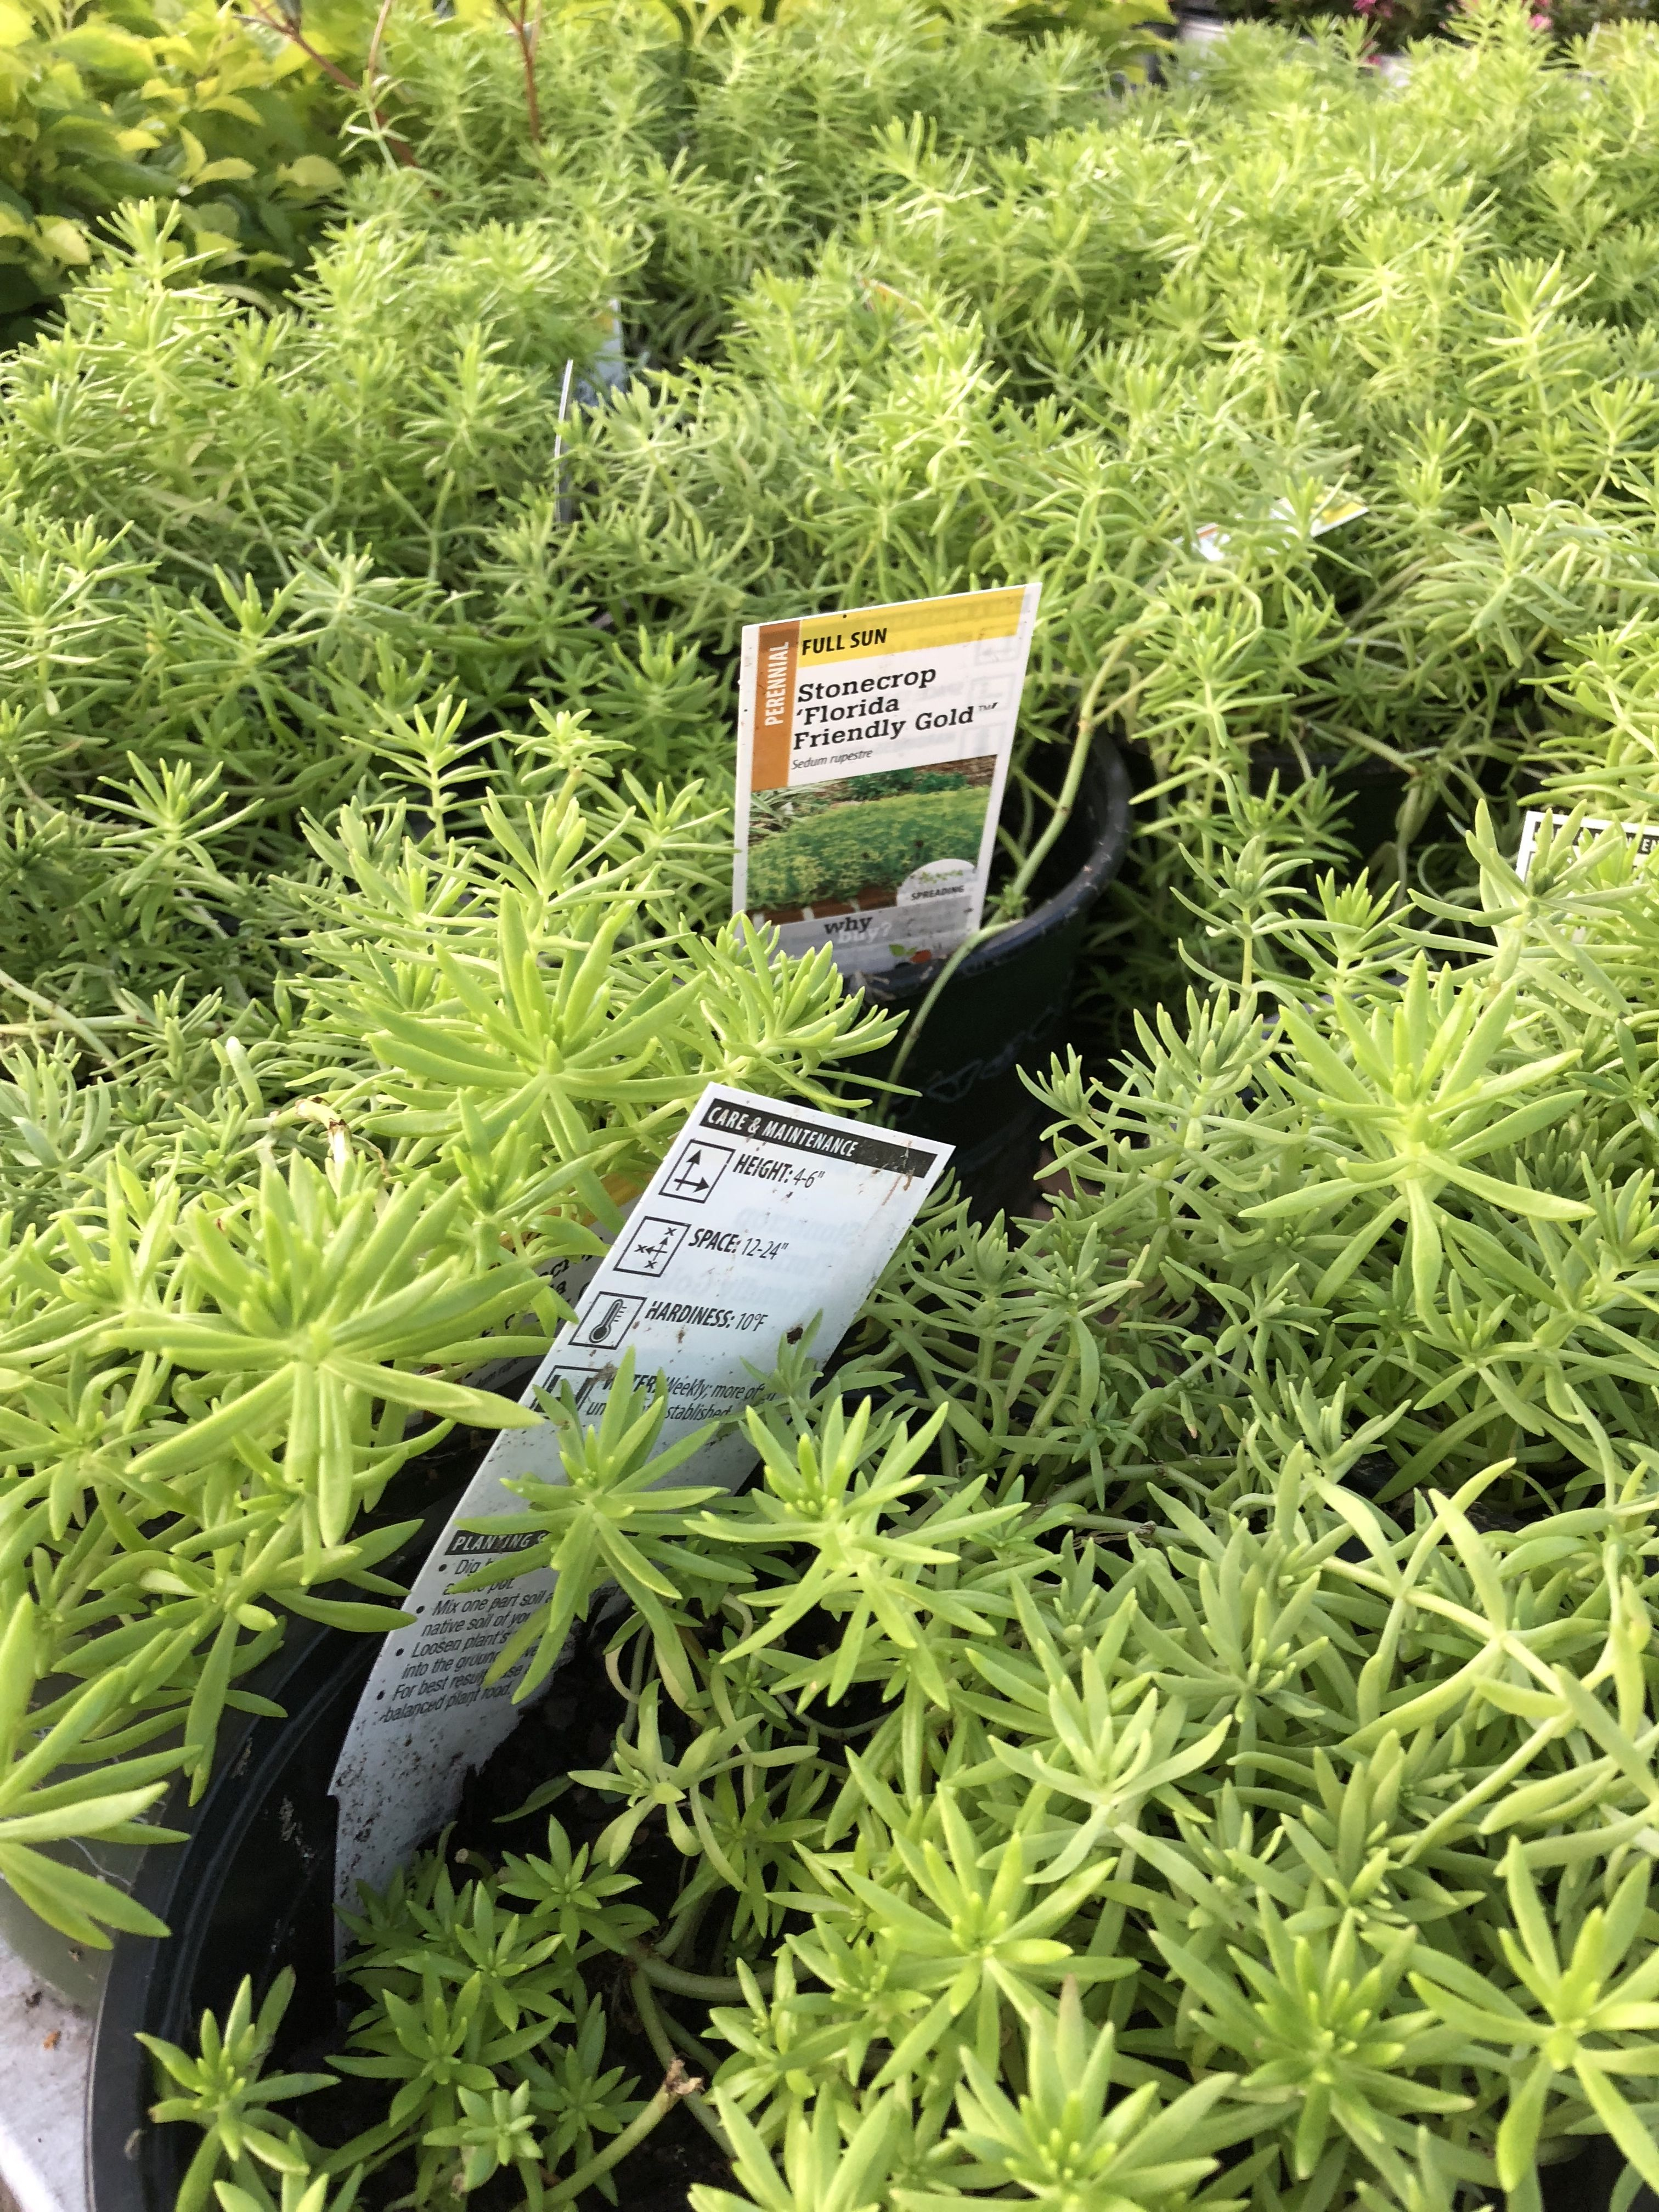 Florida's friendly gold | Herbs, Plants, Gold